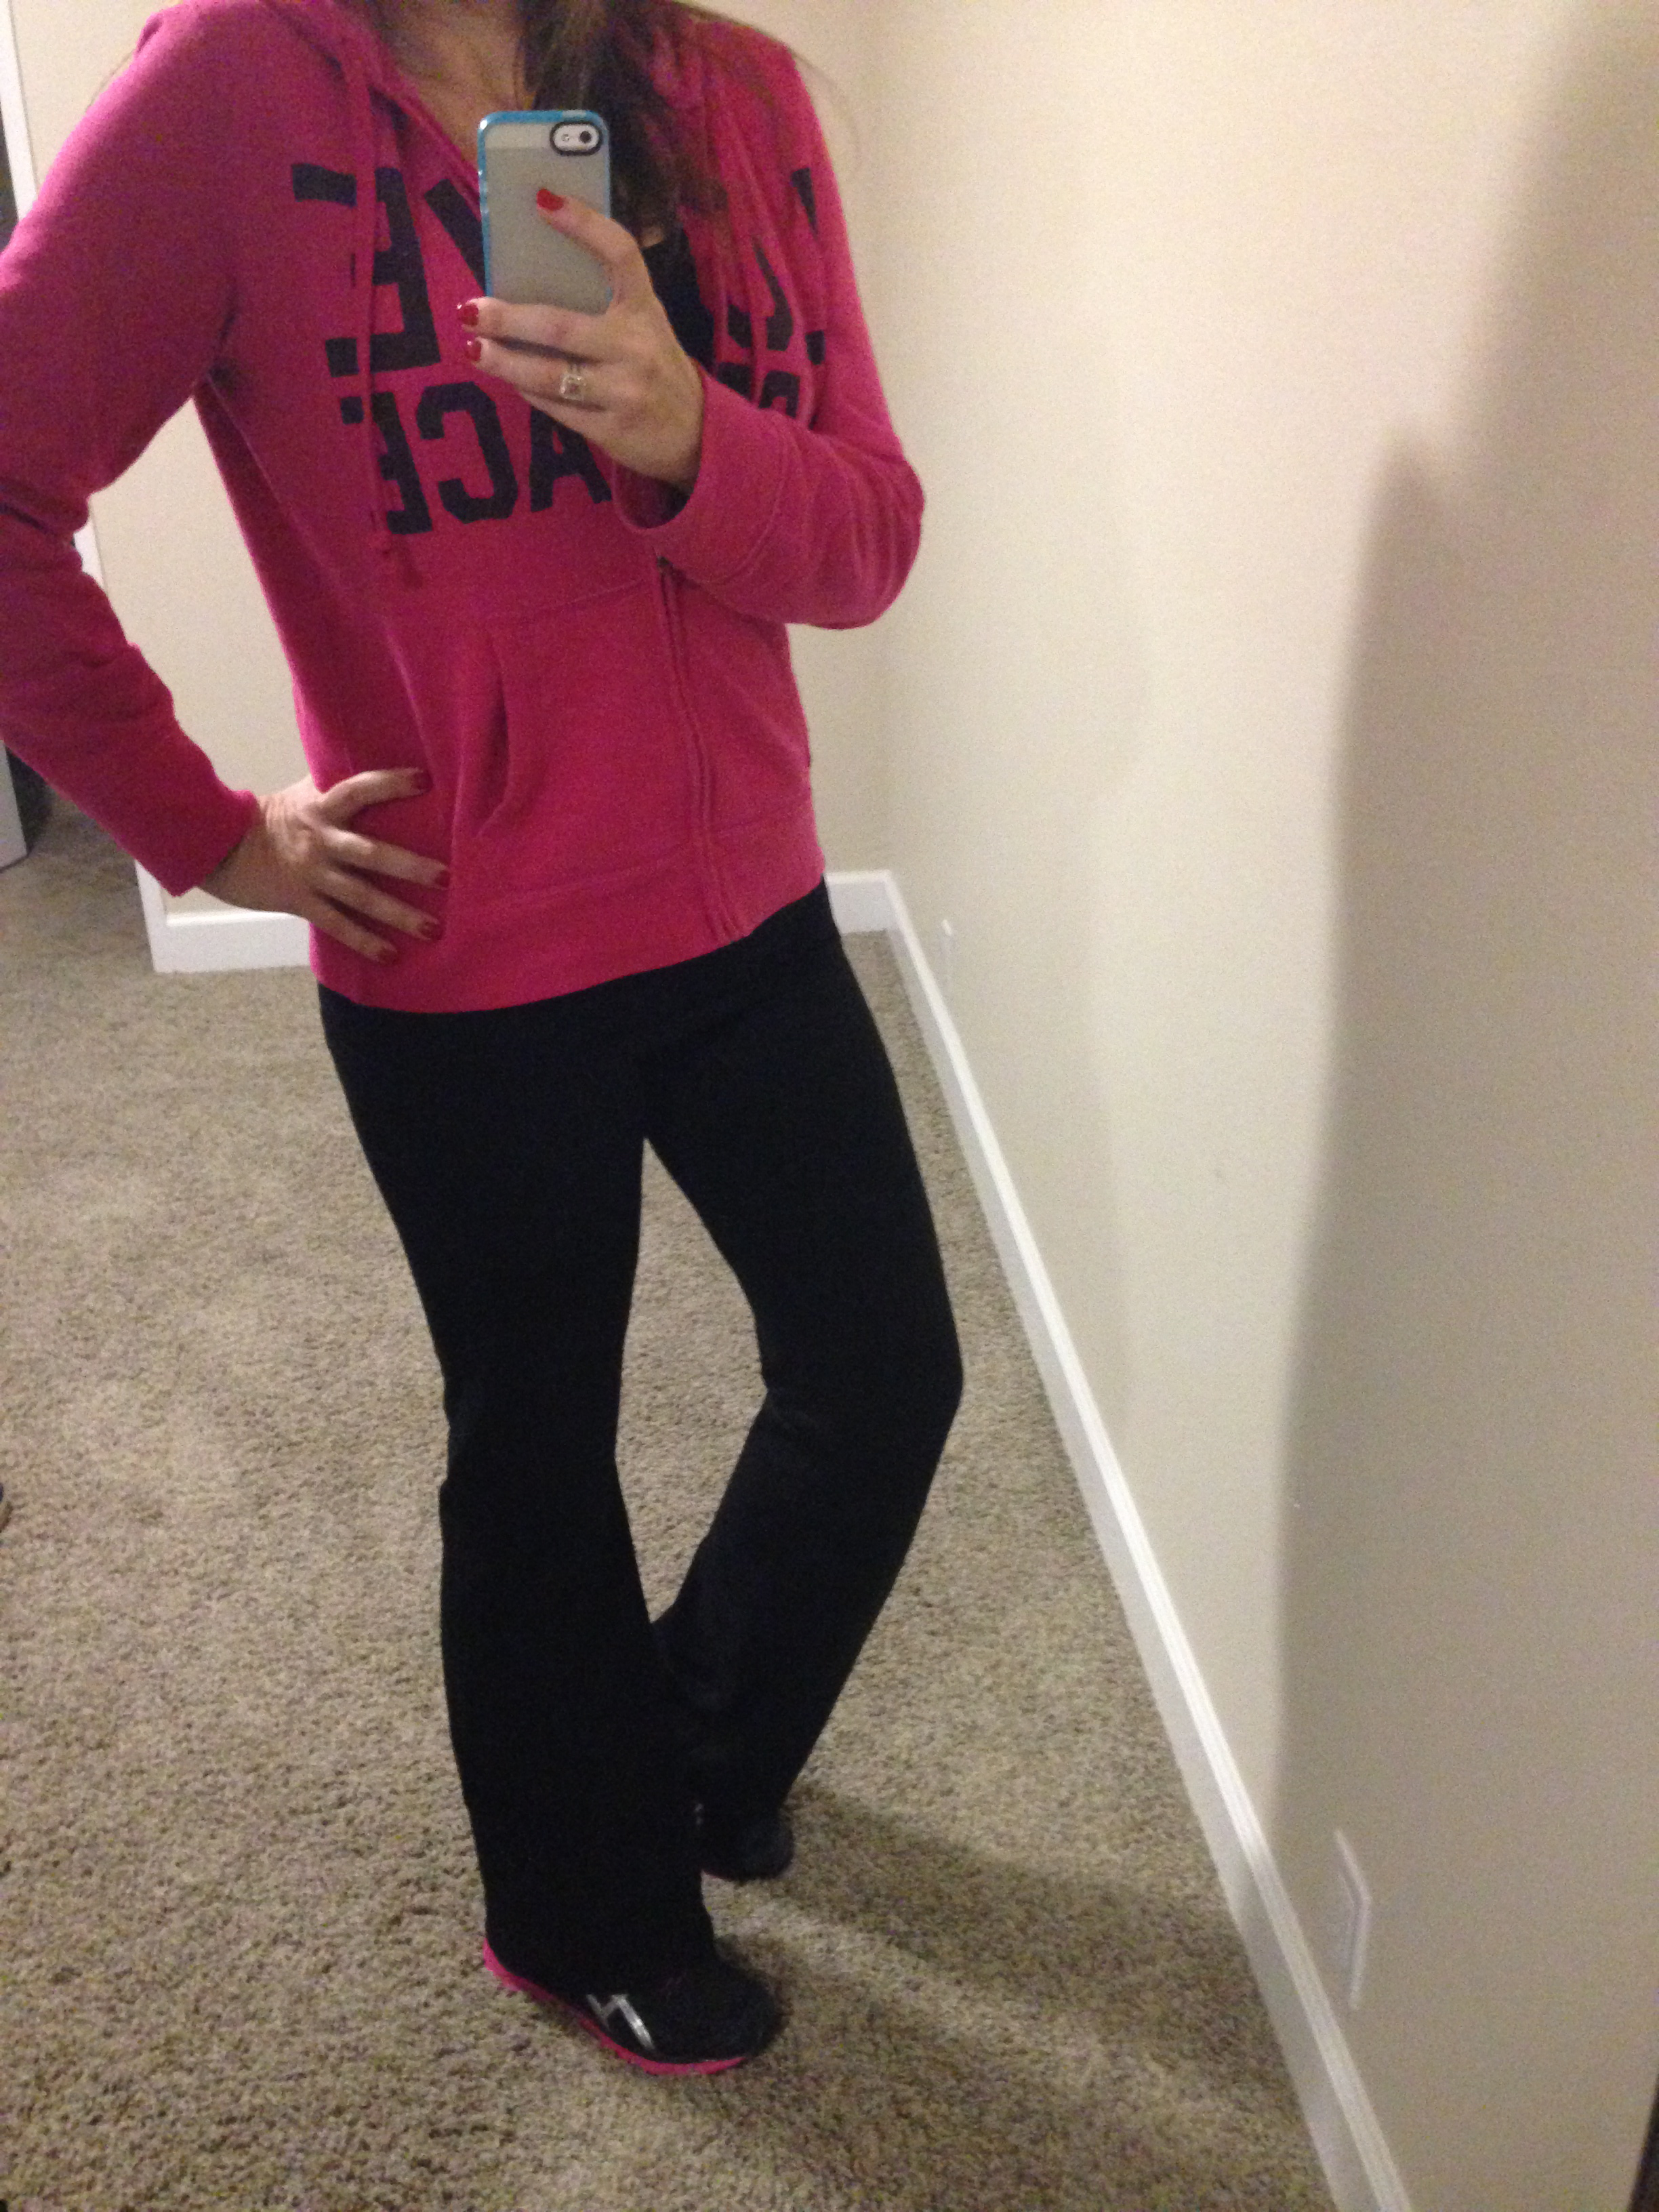 Sweatshirt: Xhilaration for Target; Pants: Victoria's Secret; Shoes: Asics; Watch: Michele